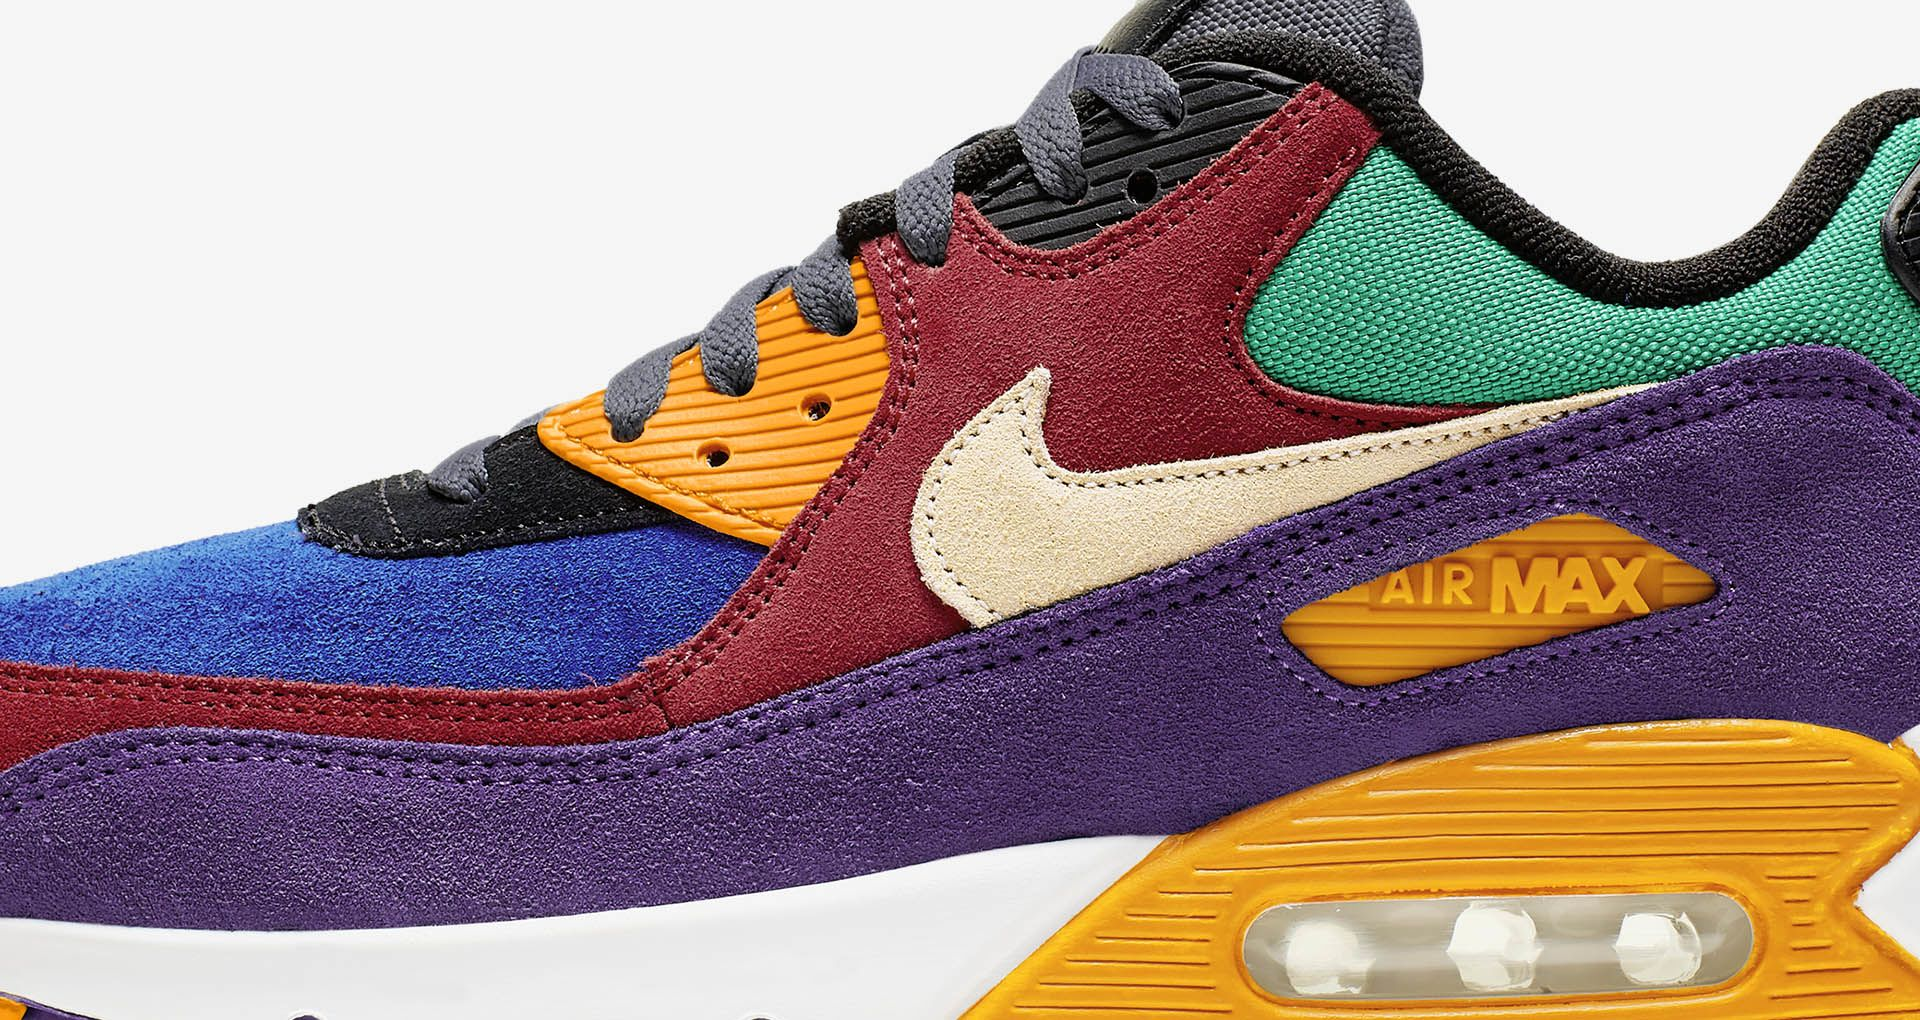 07-nike-air-max-90-viotech-cd0917-600